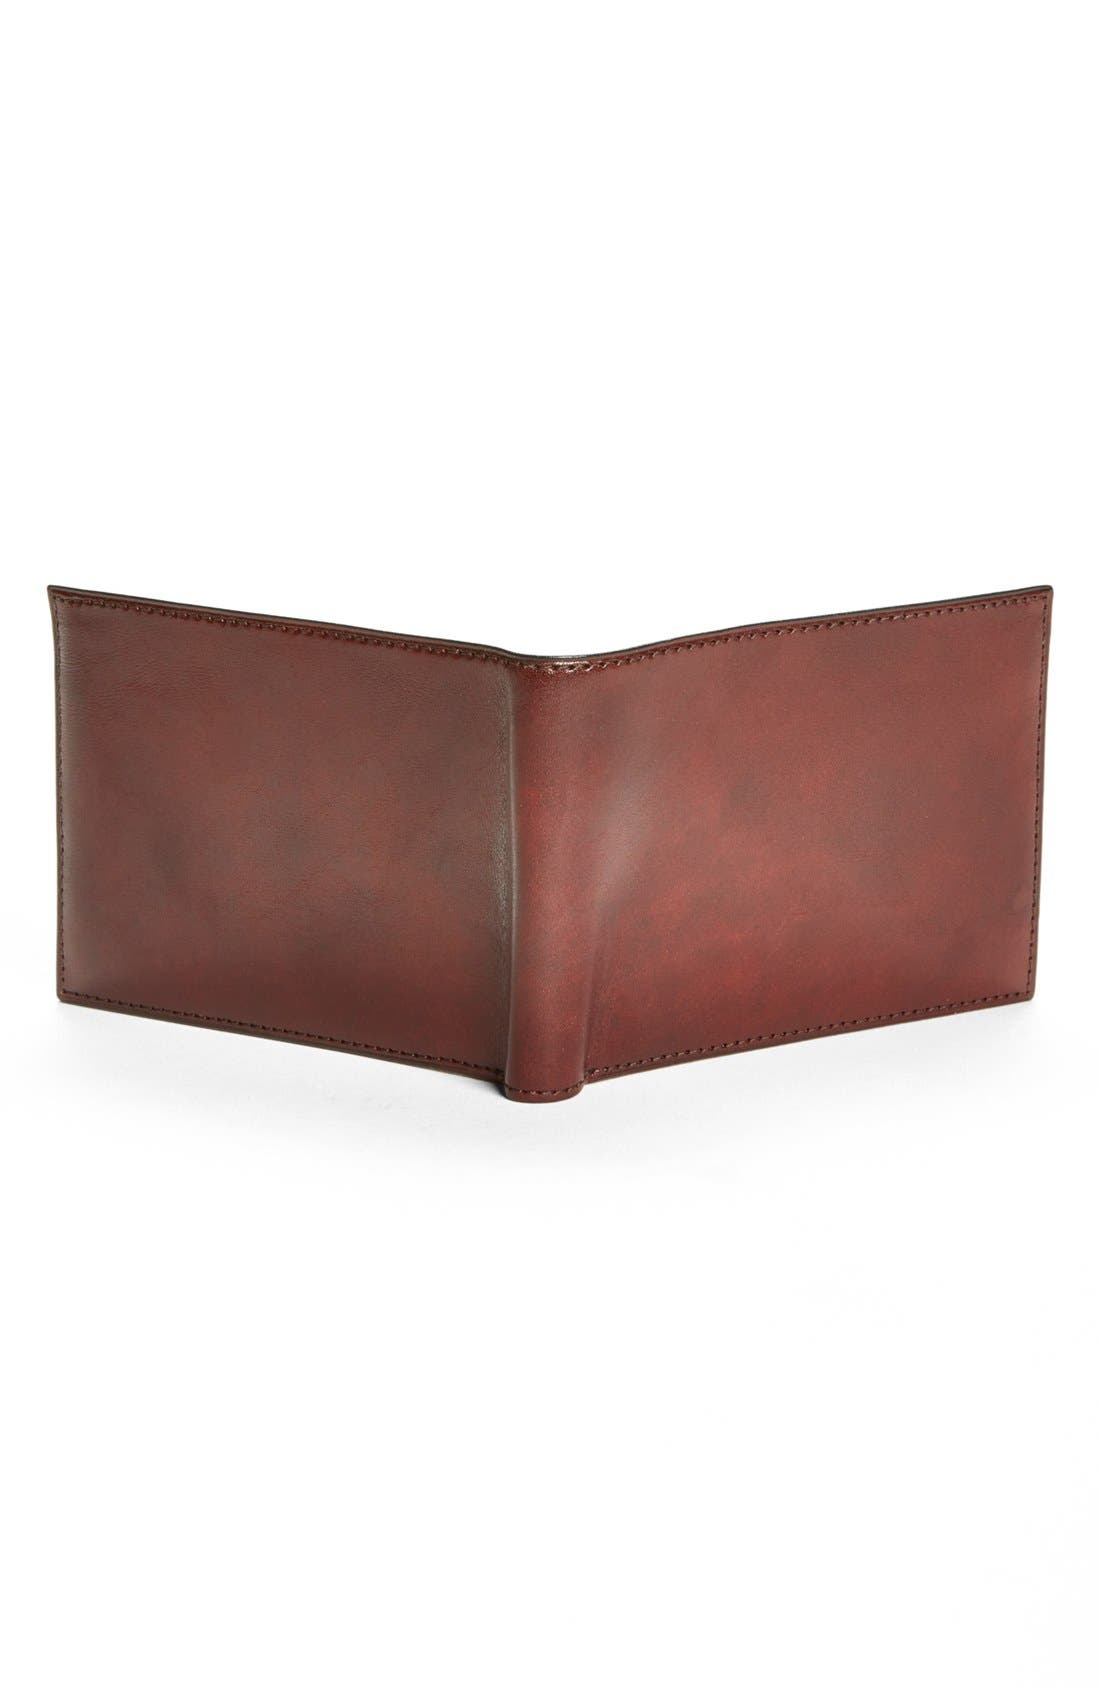 ID Passcase Wallet,                             Alternate thumbnail 3, color,                             BROWN